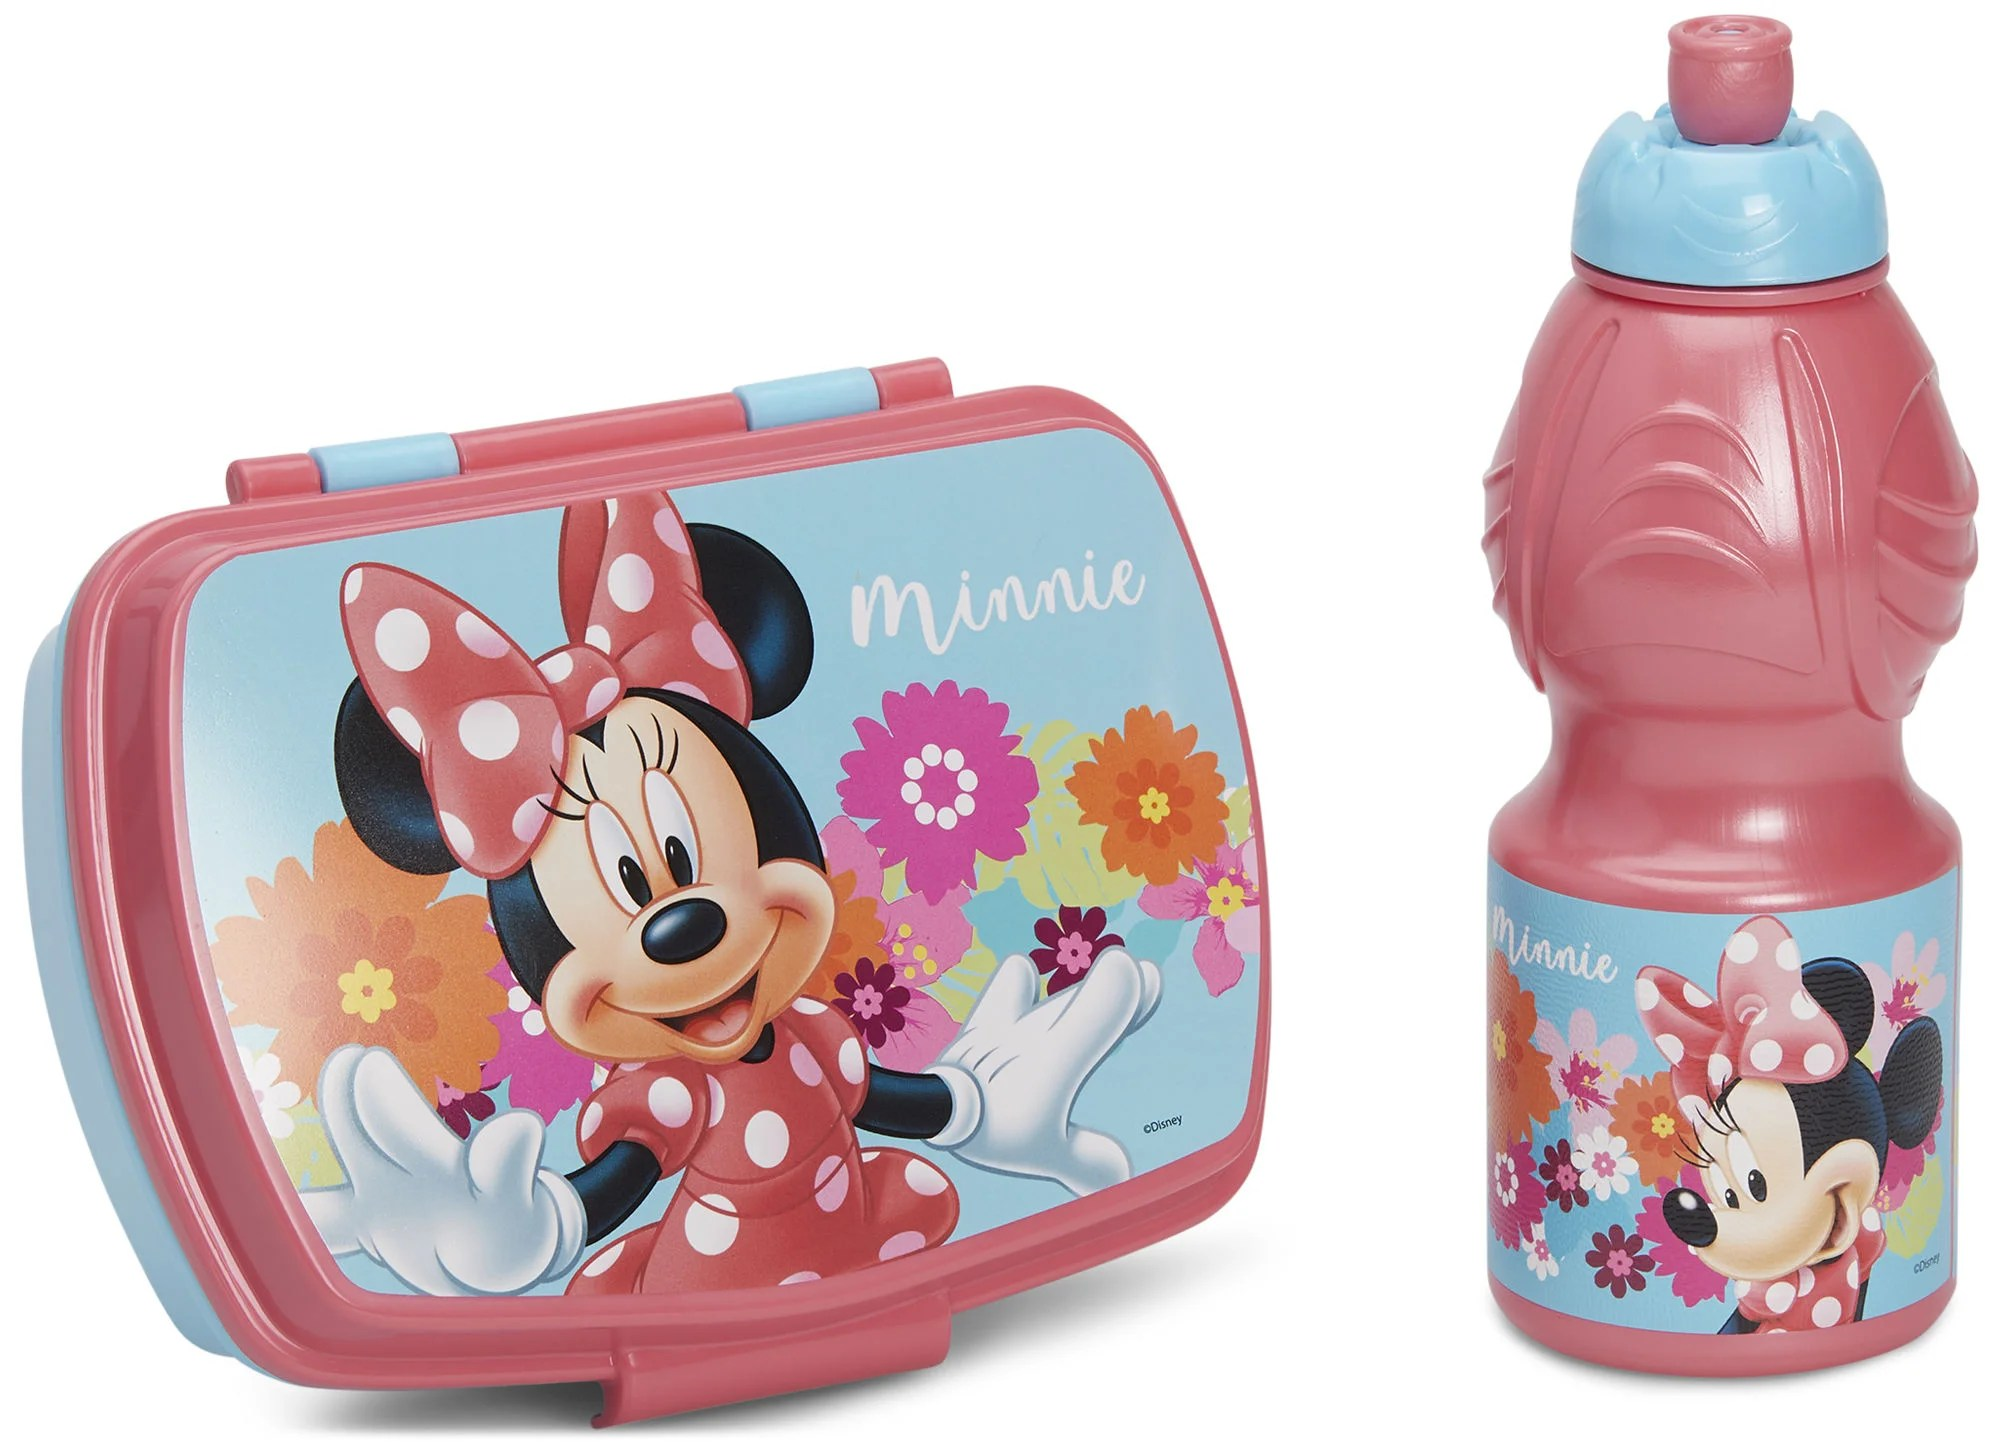 Kinderwagen Set Outlet Kaufen Disney Minnie Maus Brotzeit Set Jollyroom